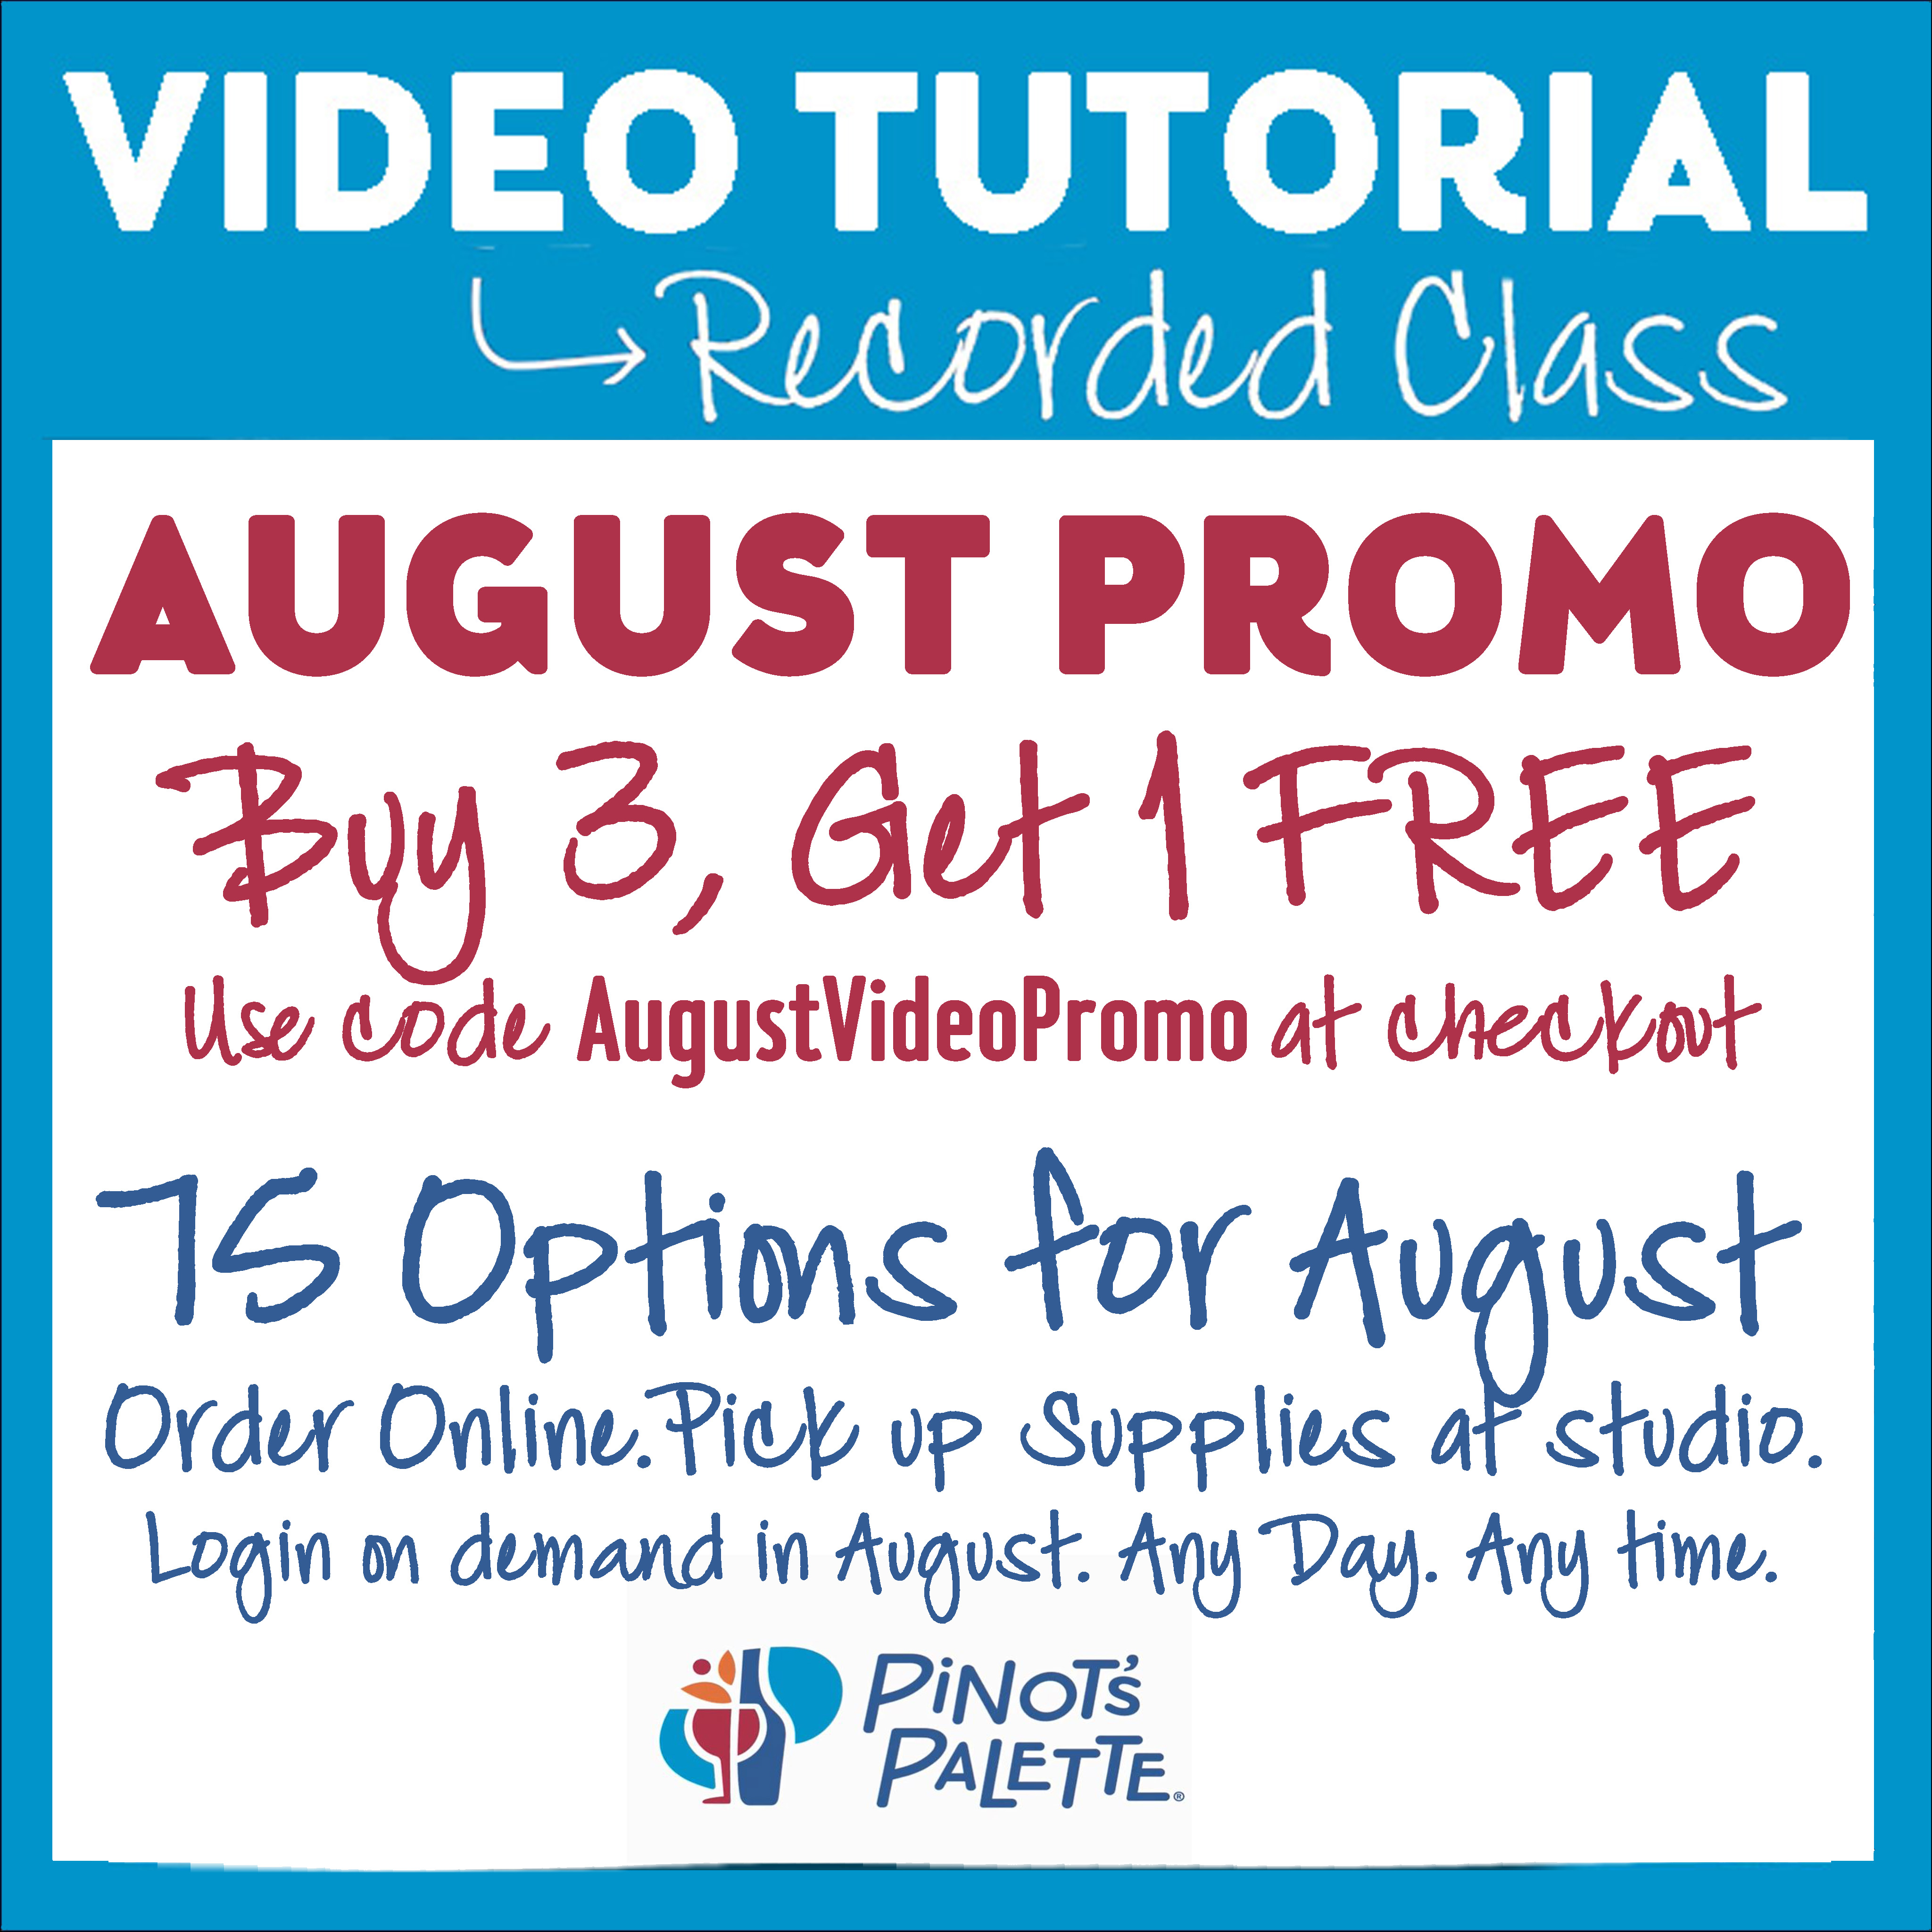 Click here to view August Video Tutorial painting options. RECORDED 2 HOUR CLASS WITH SUPPLIES-LOGIN ON DEMAND-PAINT IN AUGUST, ANY DAY, ANY TIME. Order online. Pick up kit at studio M-SAT, 3:00-6:00.